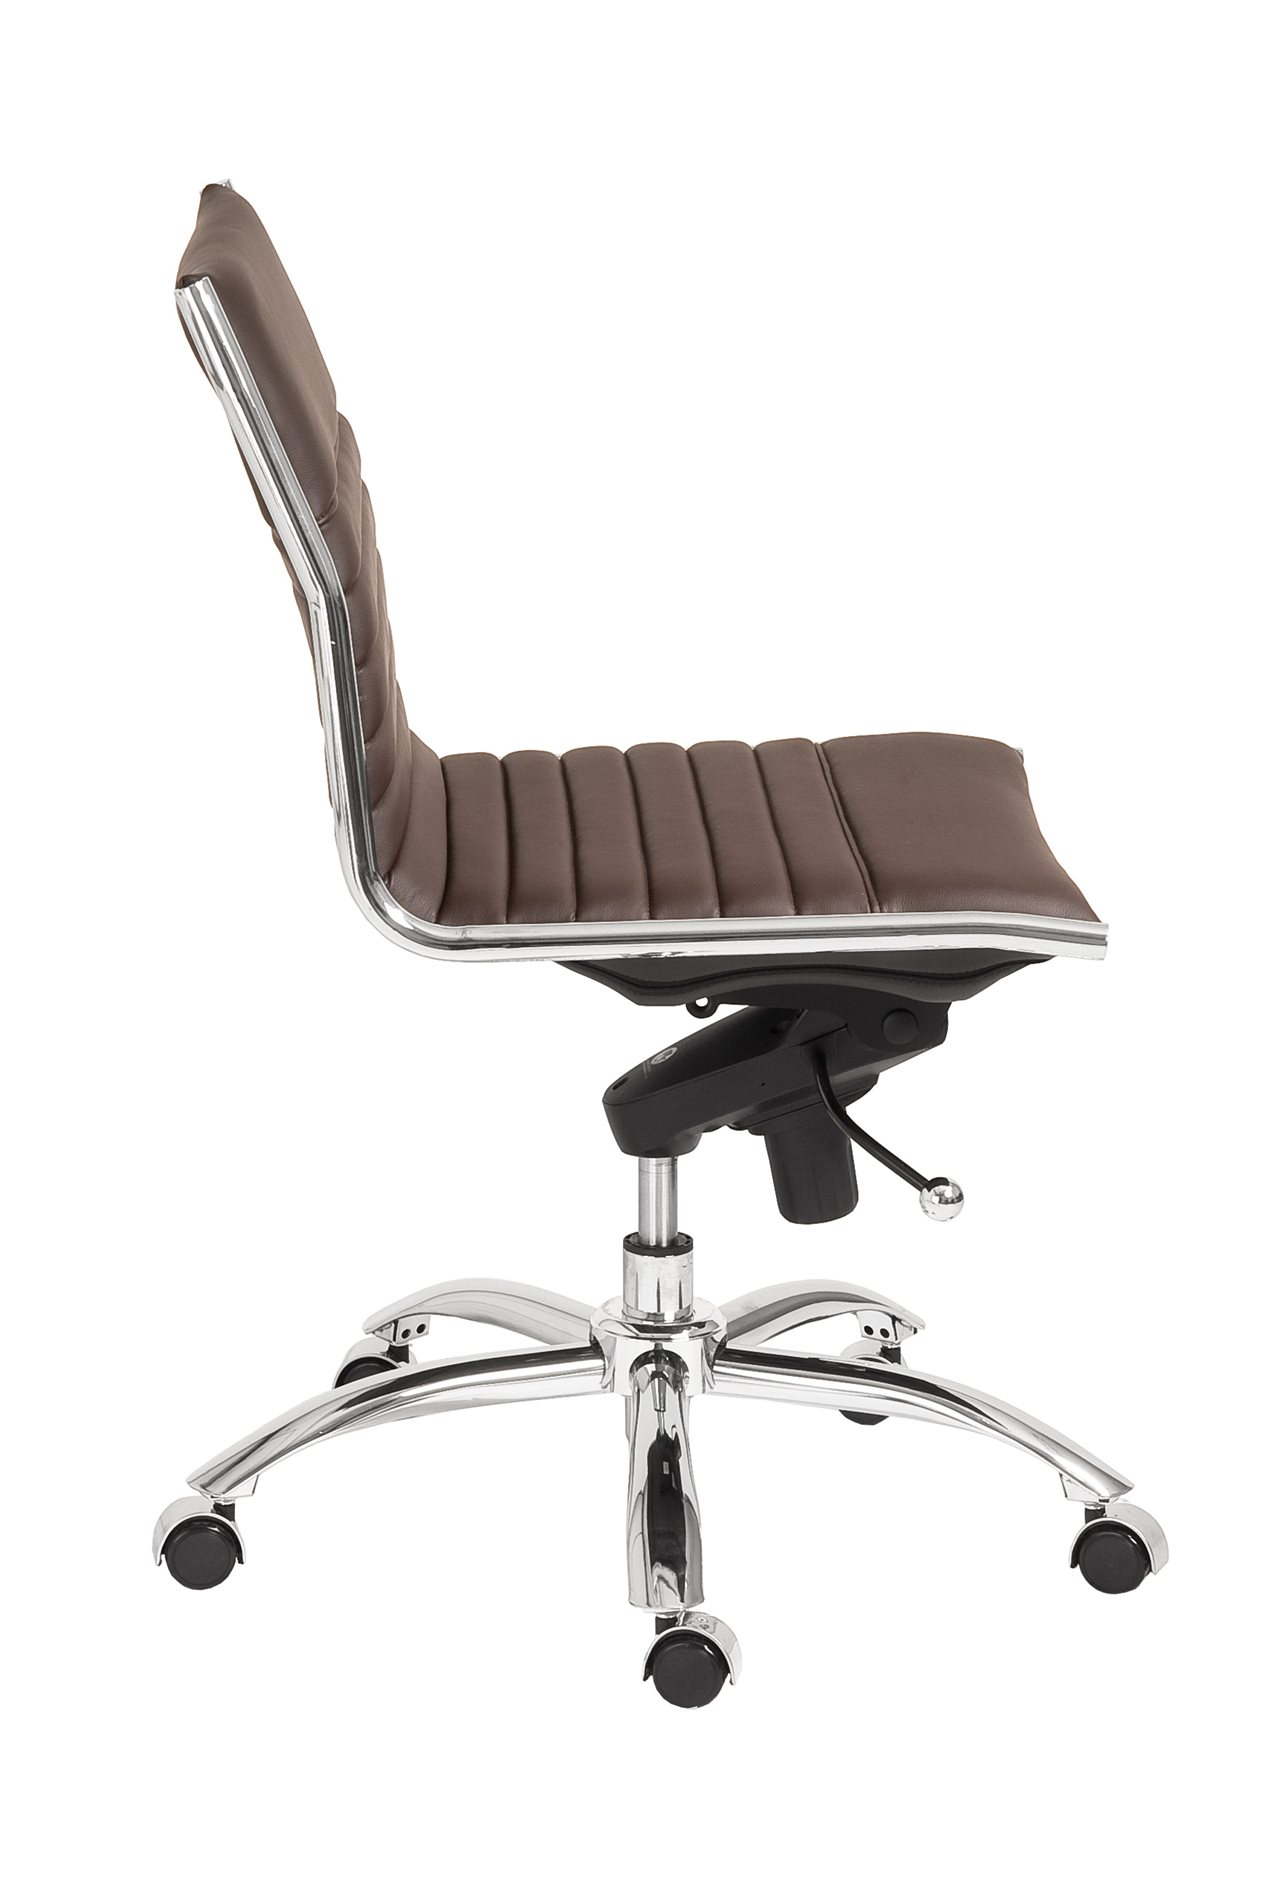 ergonomic chair without arms design in pakistan euro style 01266brn dirk low back office